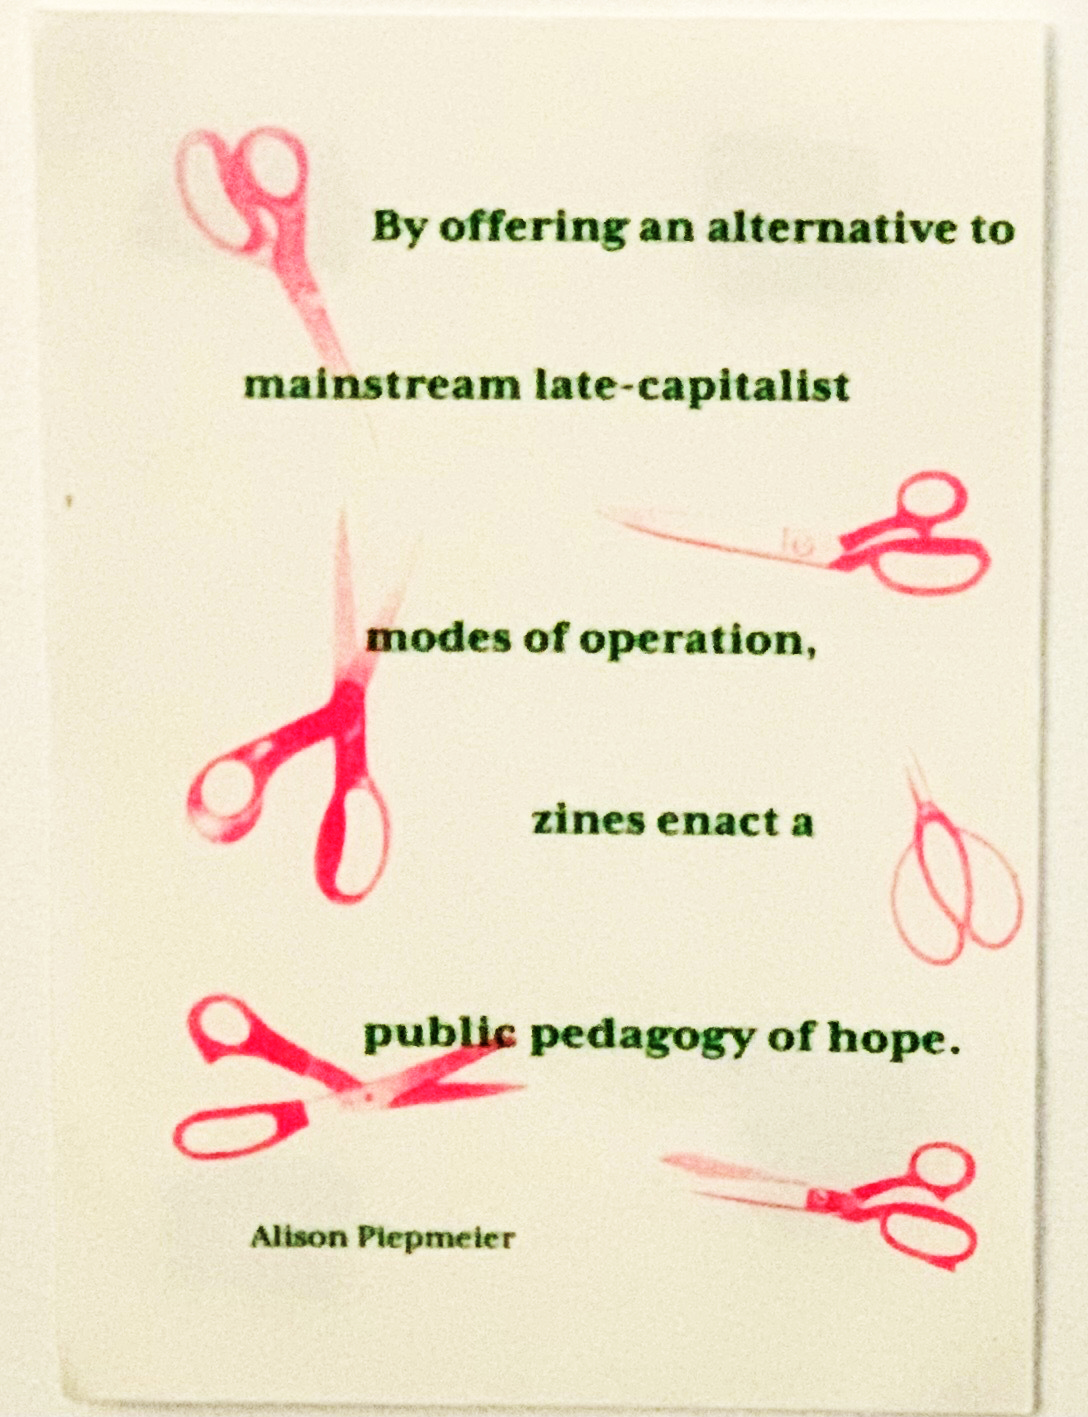 """risographic printed quotation, """"By offering an alternative to mainstream late-capitalist modes of operation, zines enact a public pedagogy of hope."""" - Alison Piepmeier"""